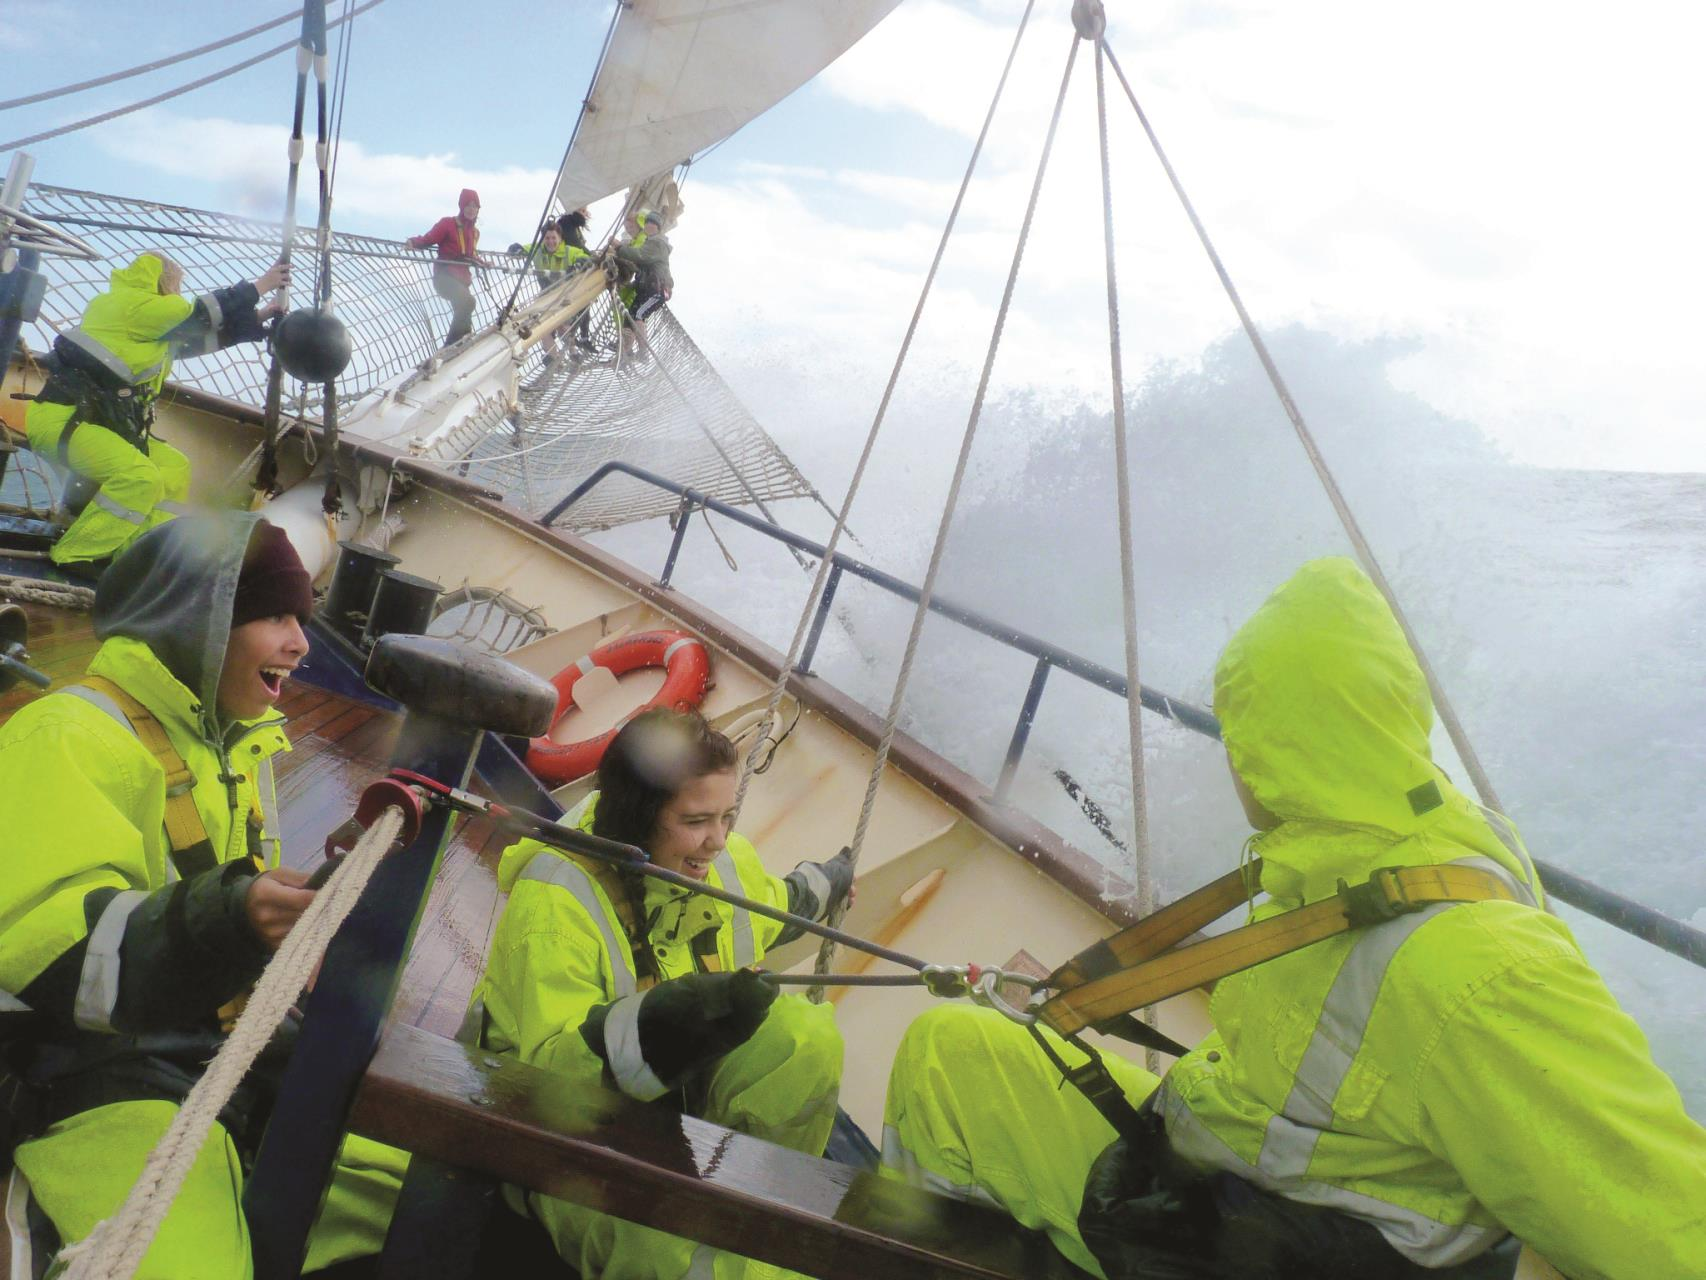 Sailing adventure opportunity for local youth